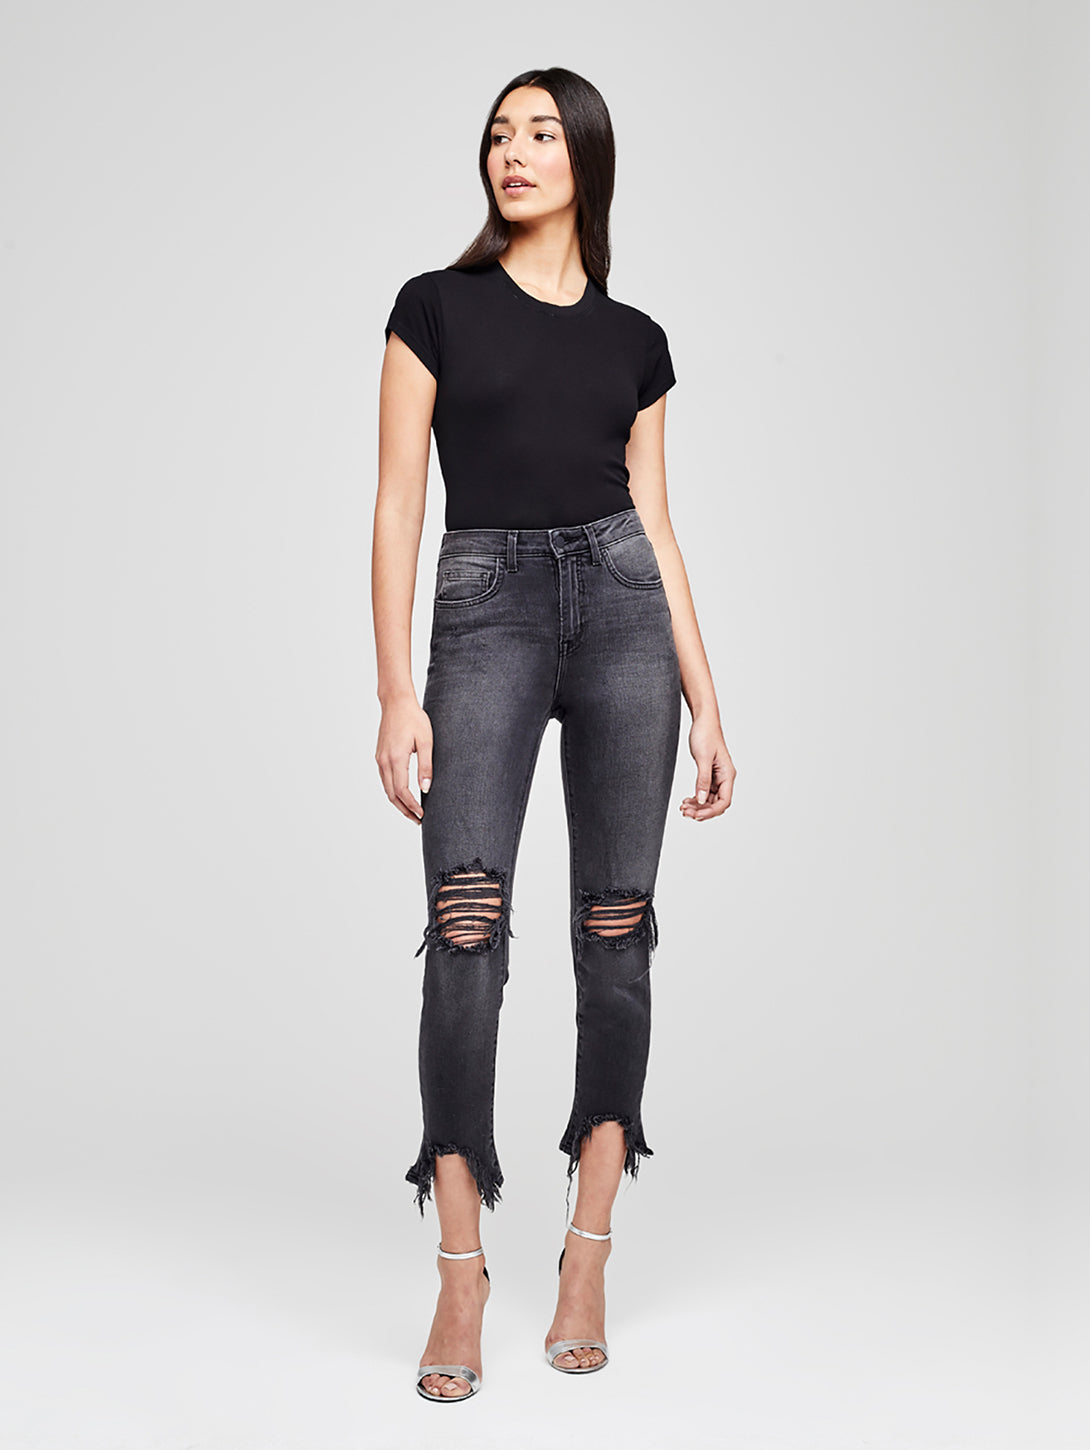 High Line High Rise Skinny Jean - Night Time Destruct-LAGENCE-Over the Rainbow